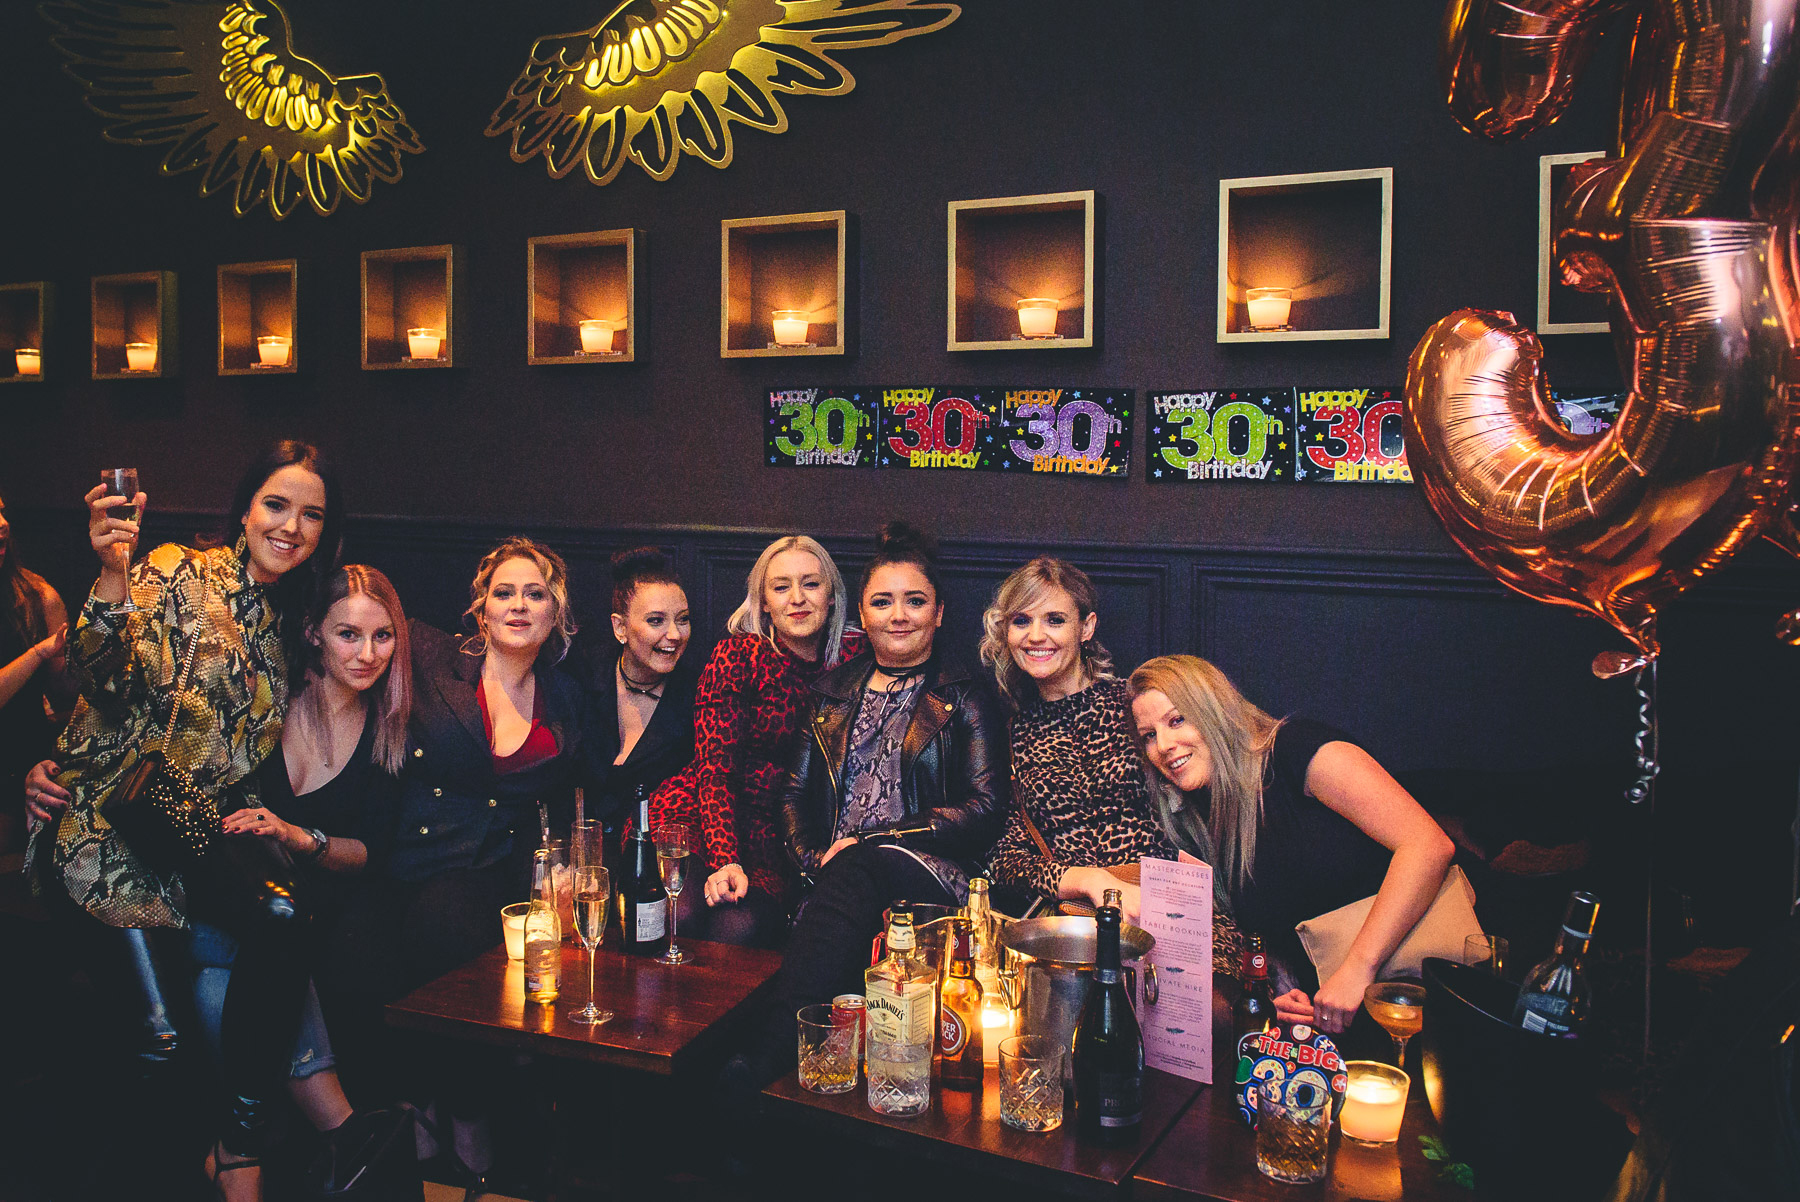 Angels cocktail bar Oxford_24.11.2018_891.jpg